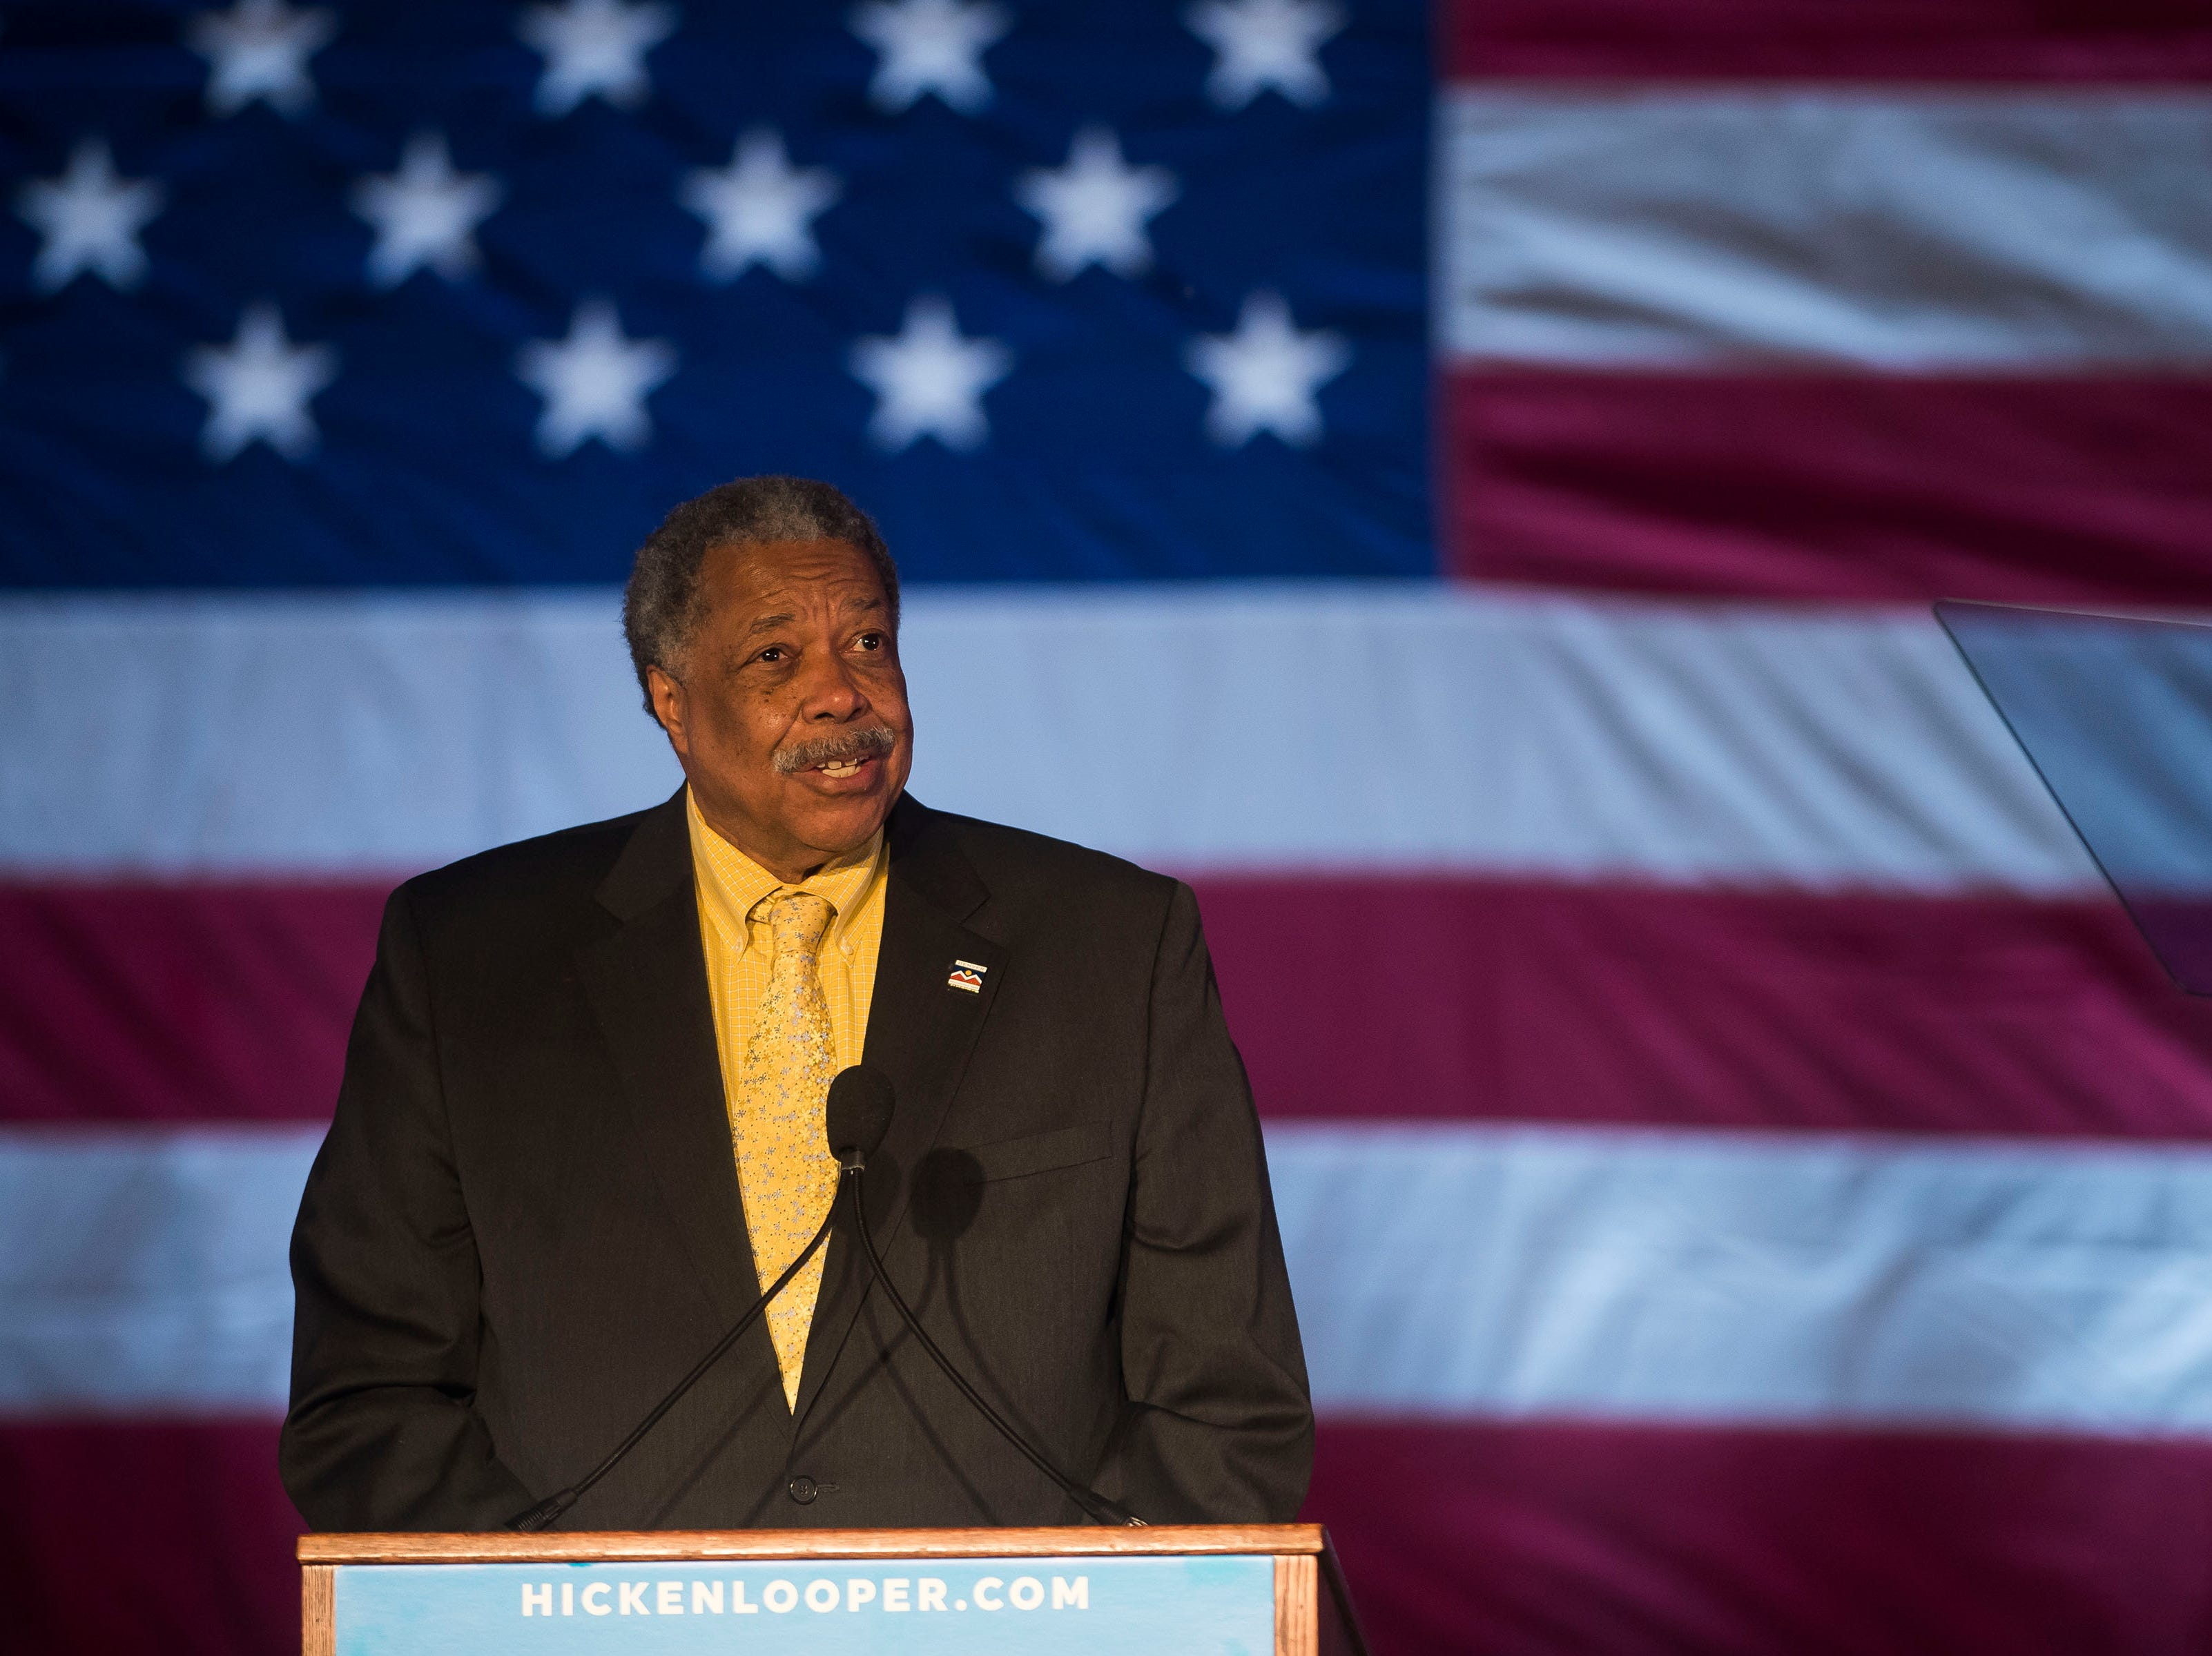 Former Denver mayor Weillington Webb speaks at the John Hickenlooper presidential campaign kick-off rally on Thursday, March 7, 2019, at the Greek Ampitheatre in Civic Center Park in Denver, Colo.